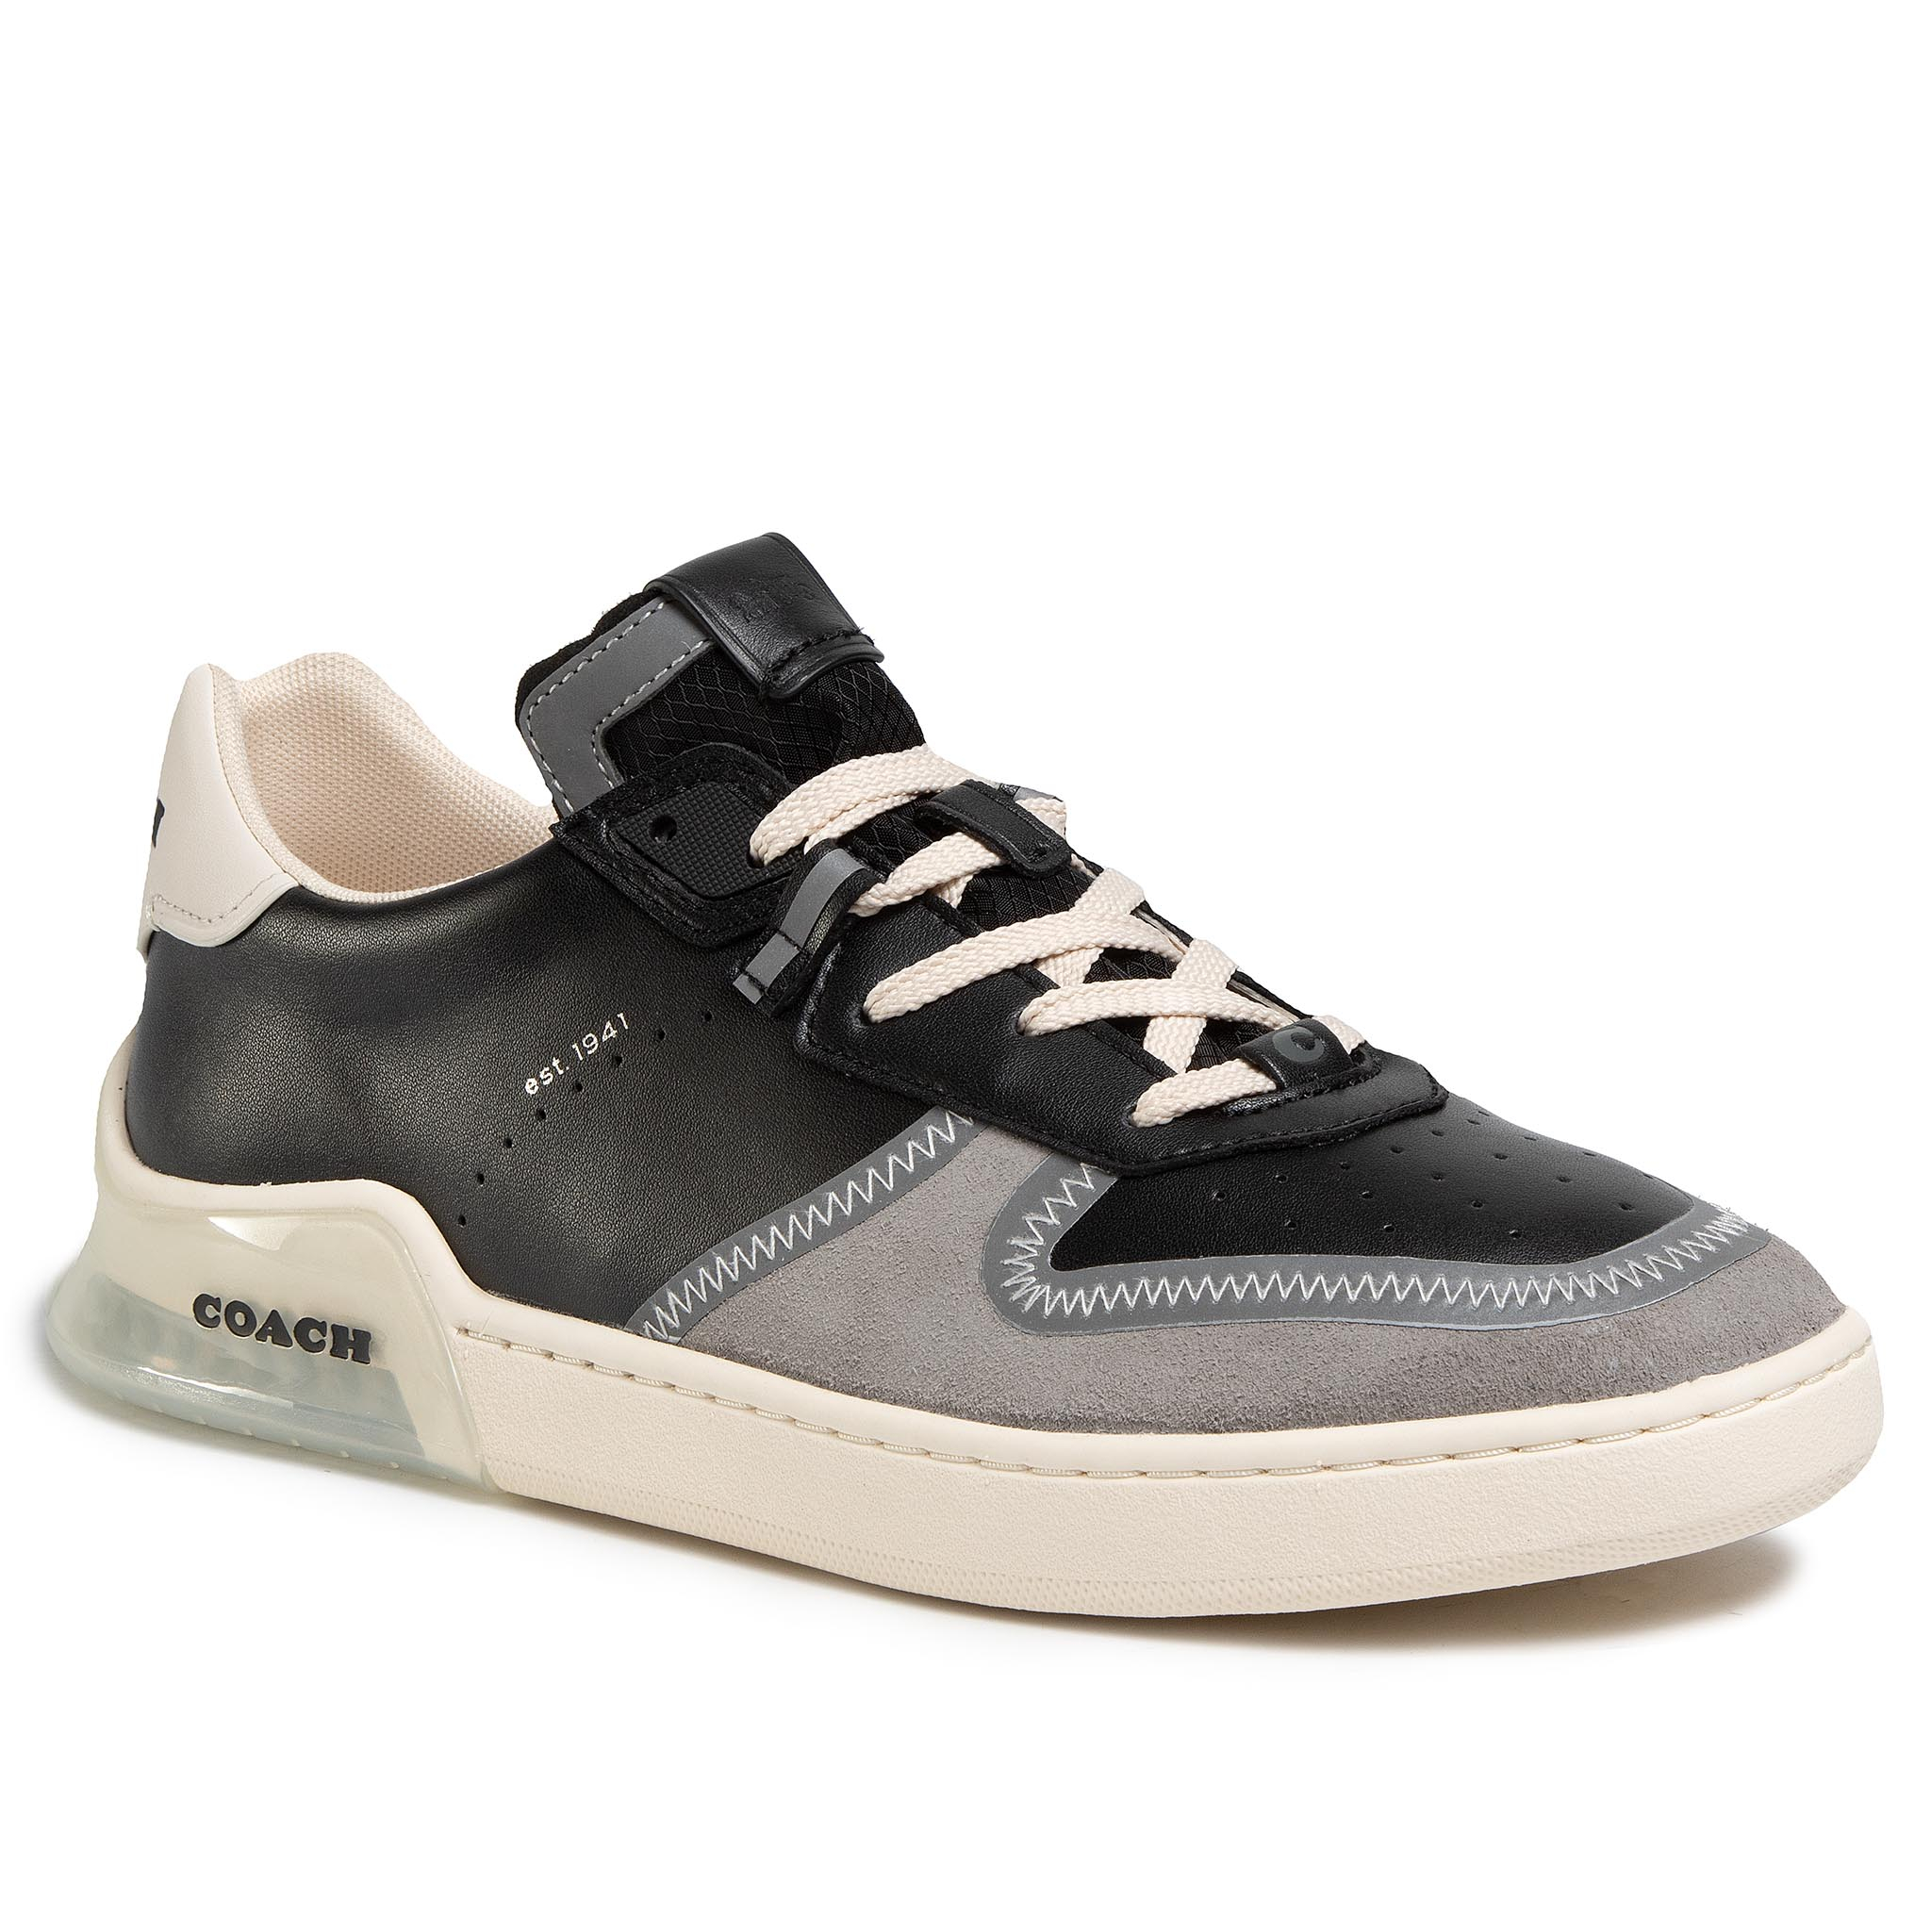 Sneakers COACH - Ctysl Crt G5016 10011275 Black